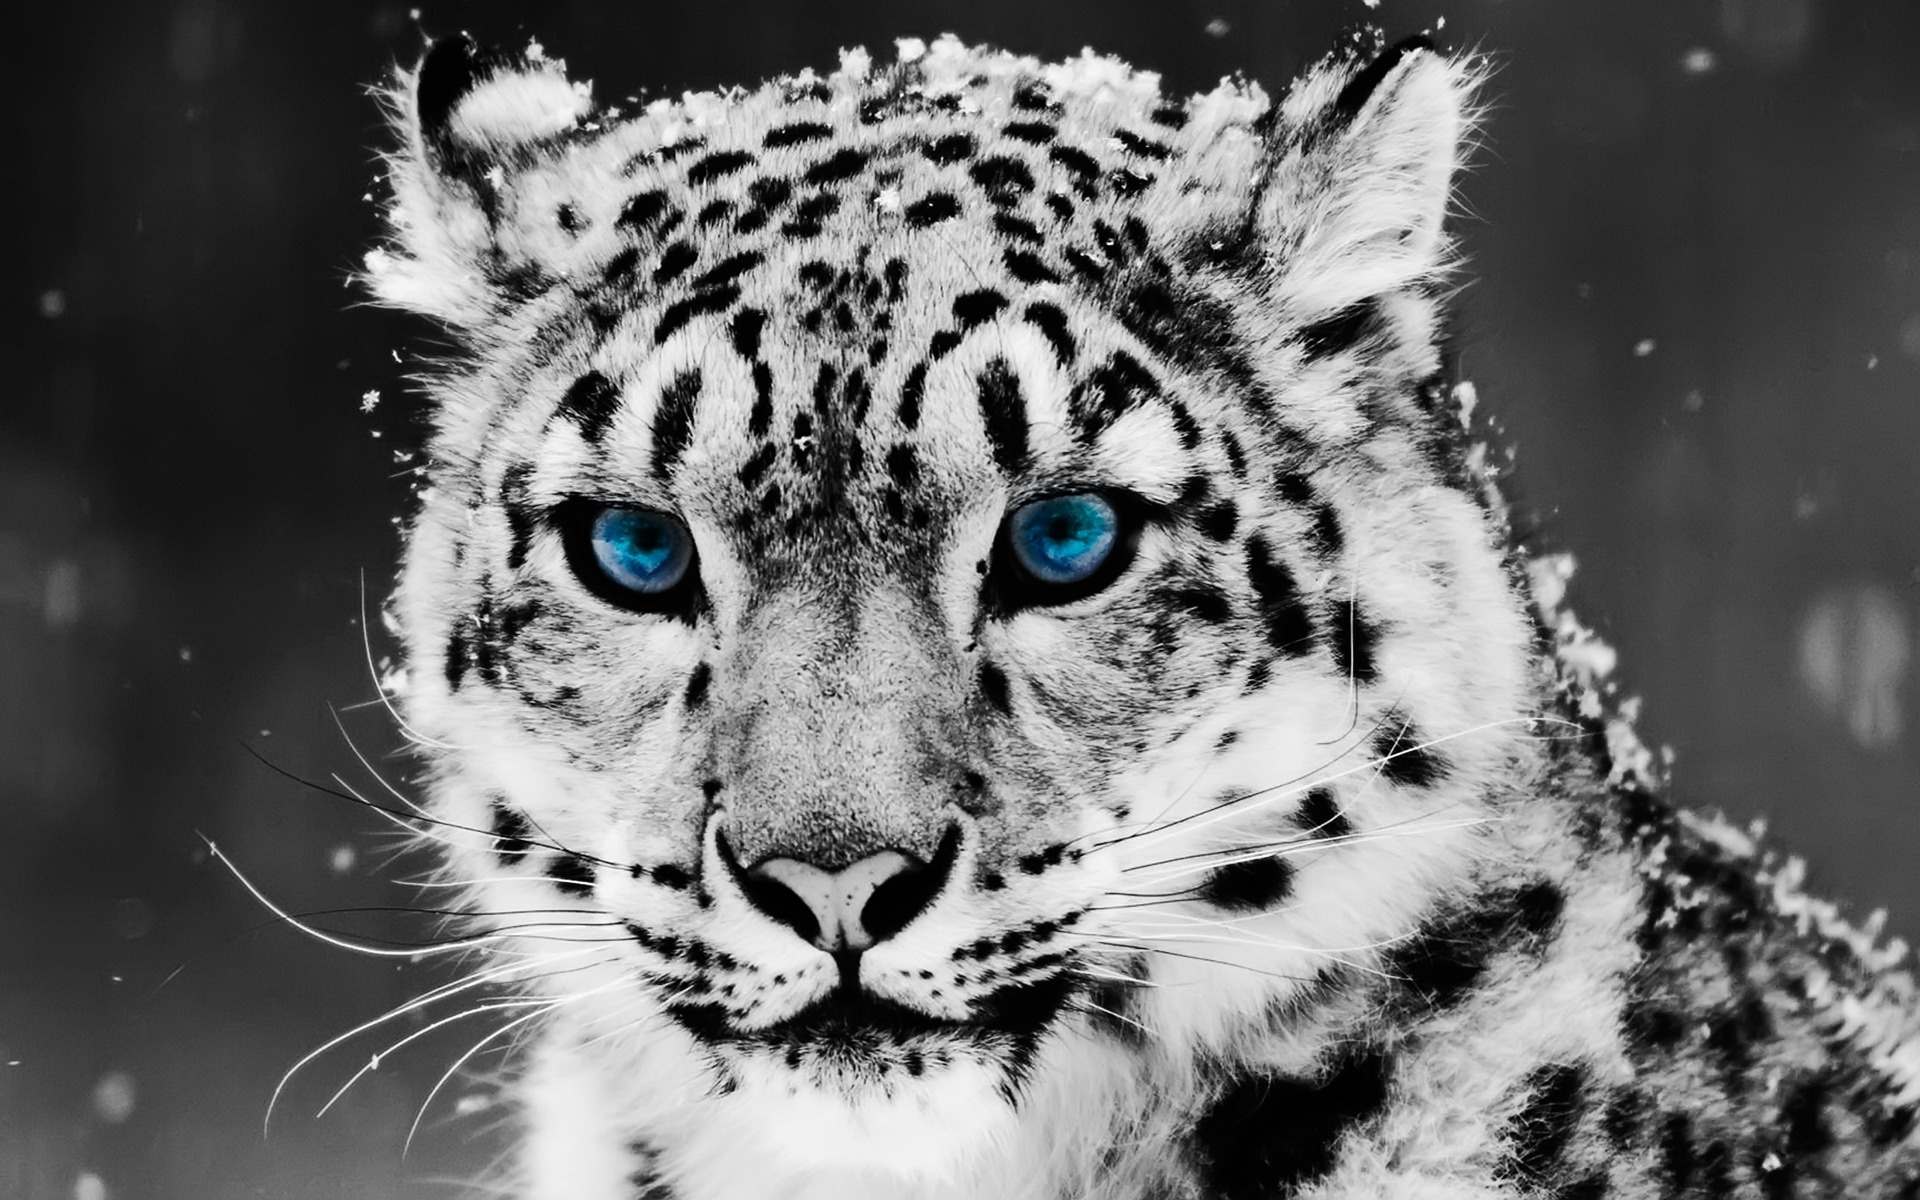 Snow Blue Eye Leopard 970.48 Kb